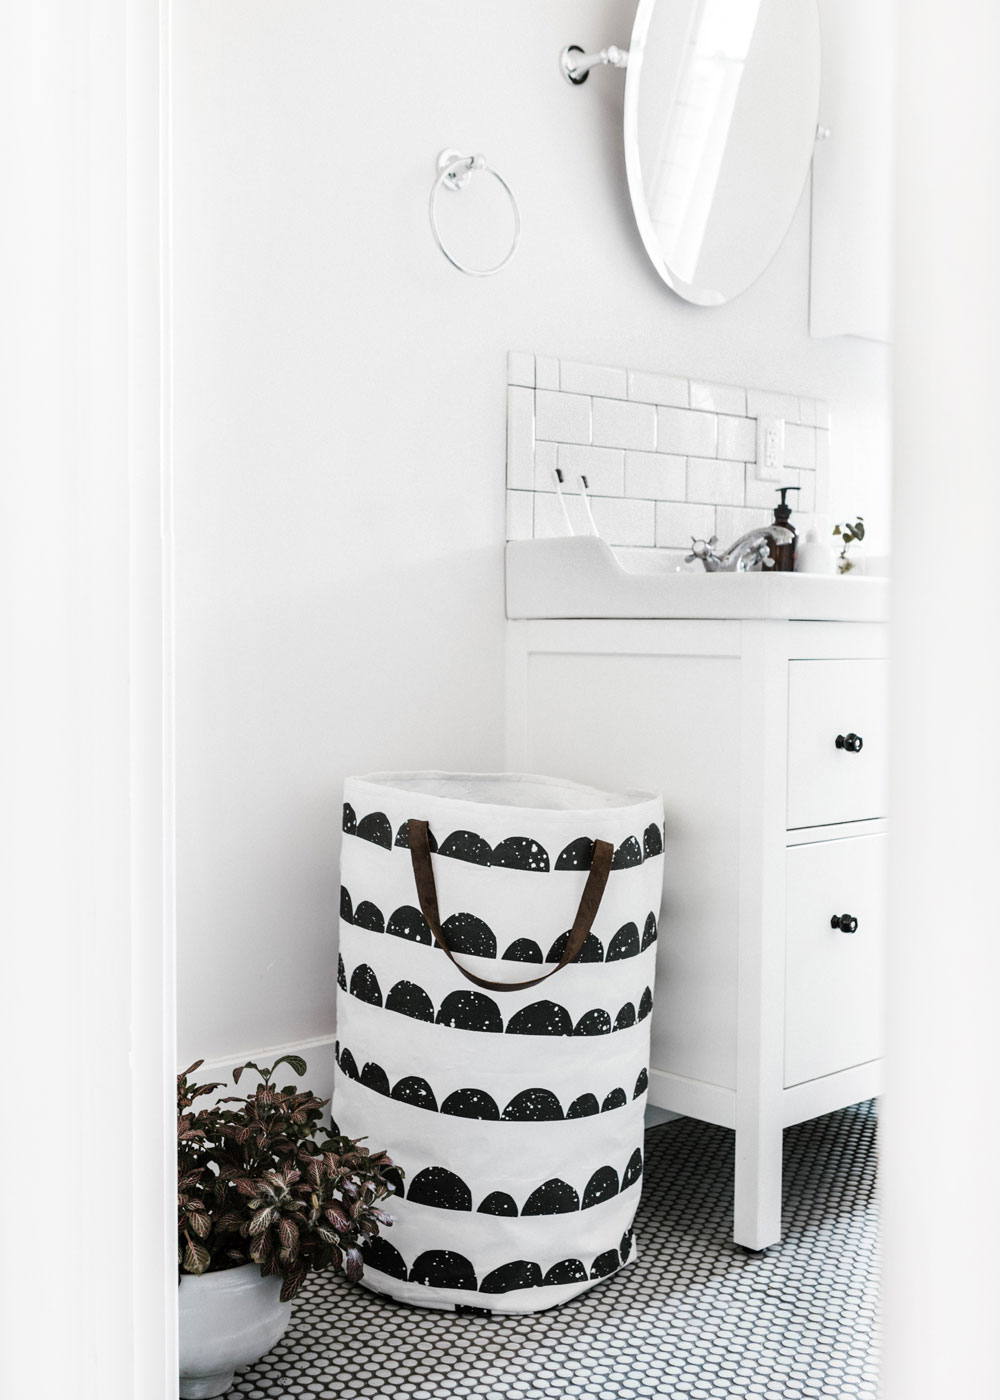 space saving tips for small bathrooms